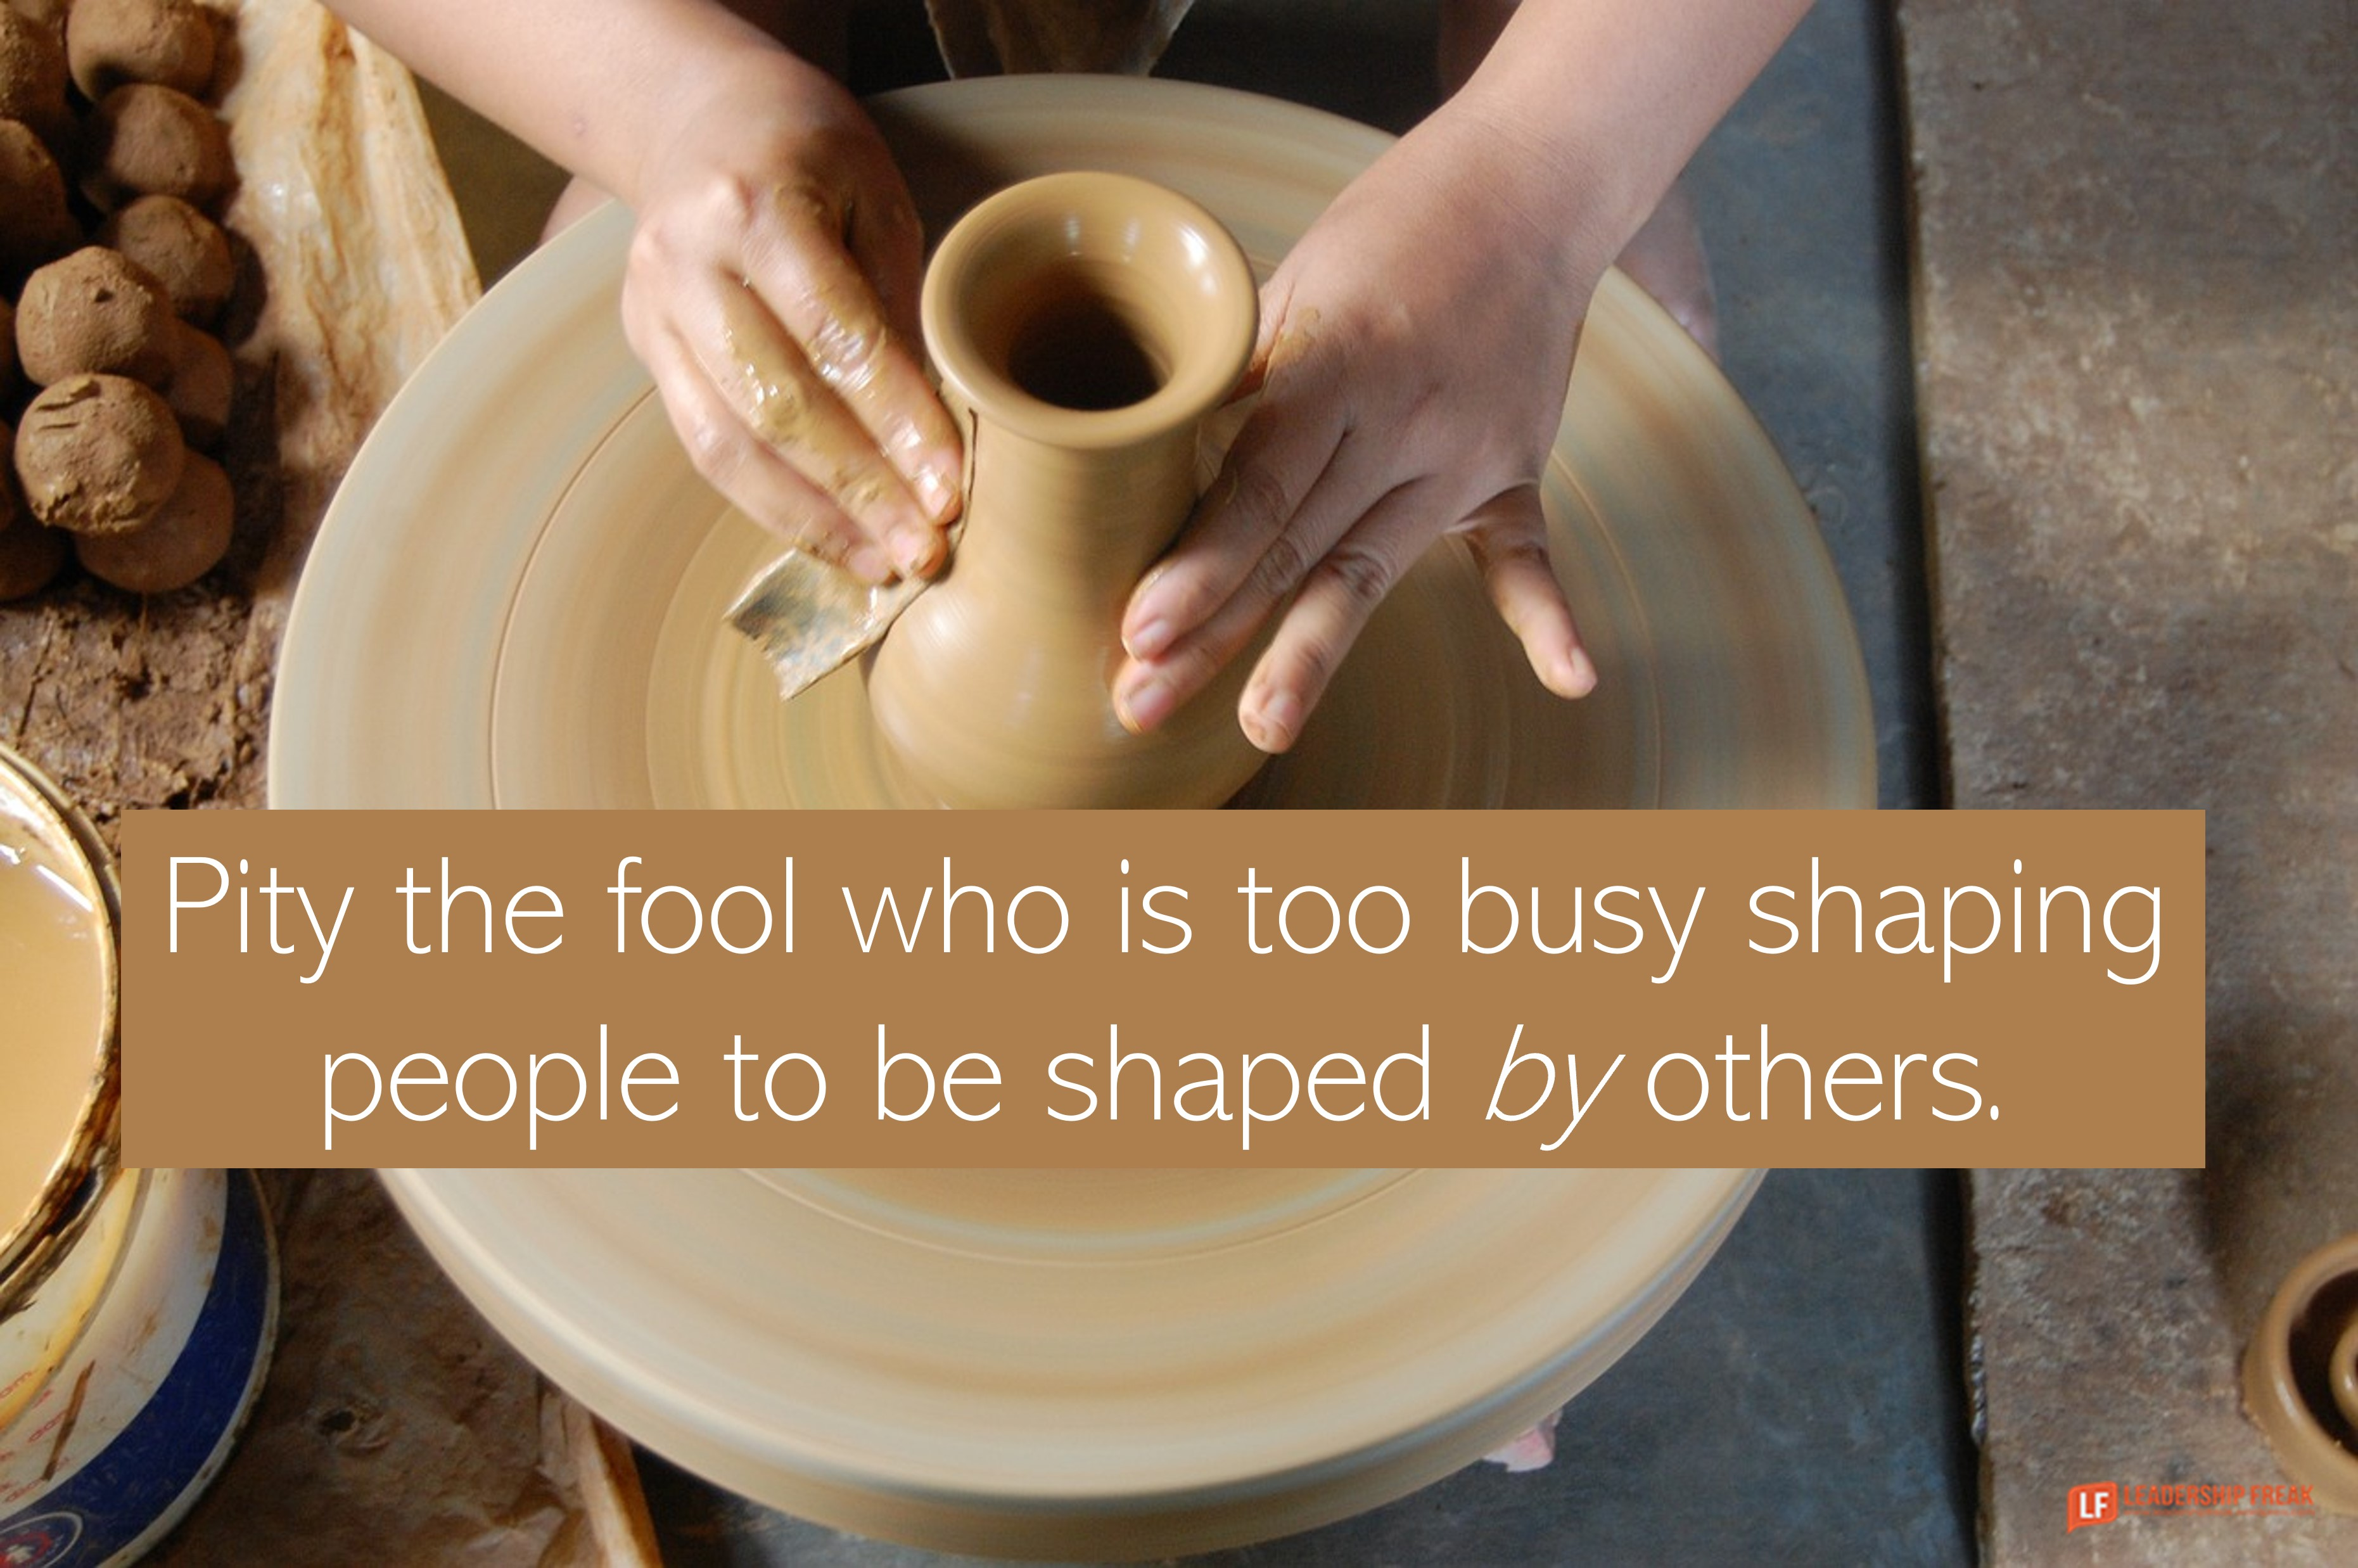 Potter - pottery  Pity the fool who is too busy shaping people to be shaped by others.